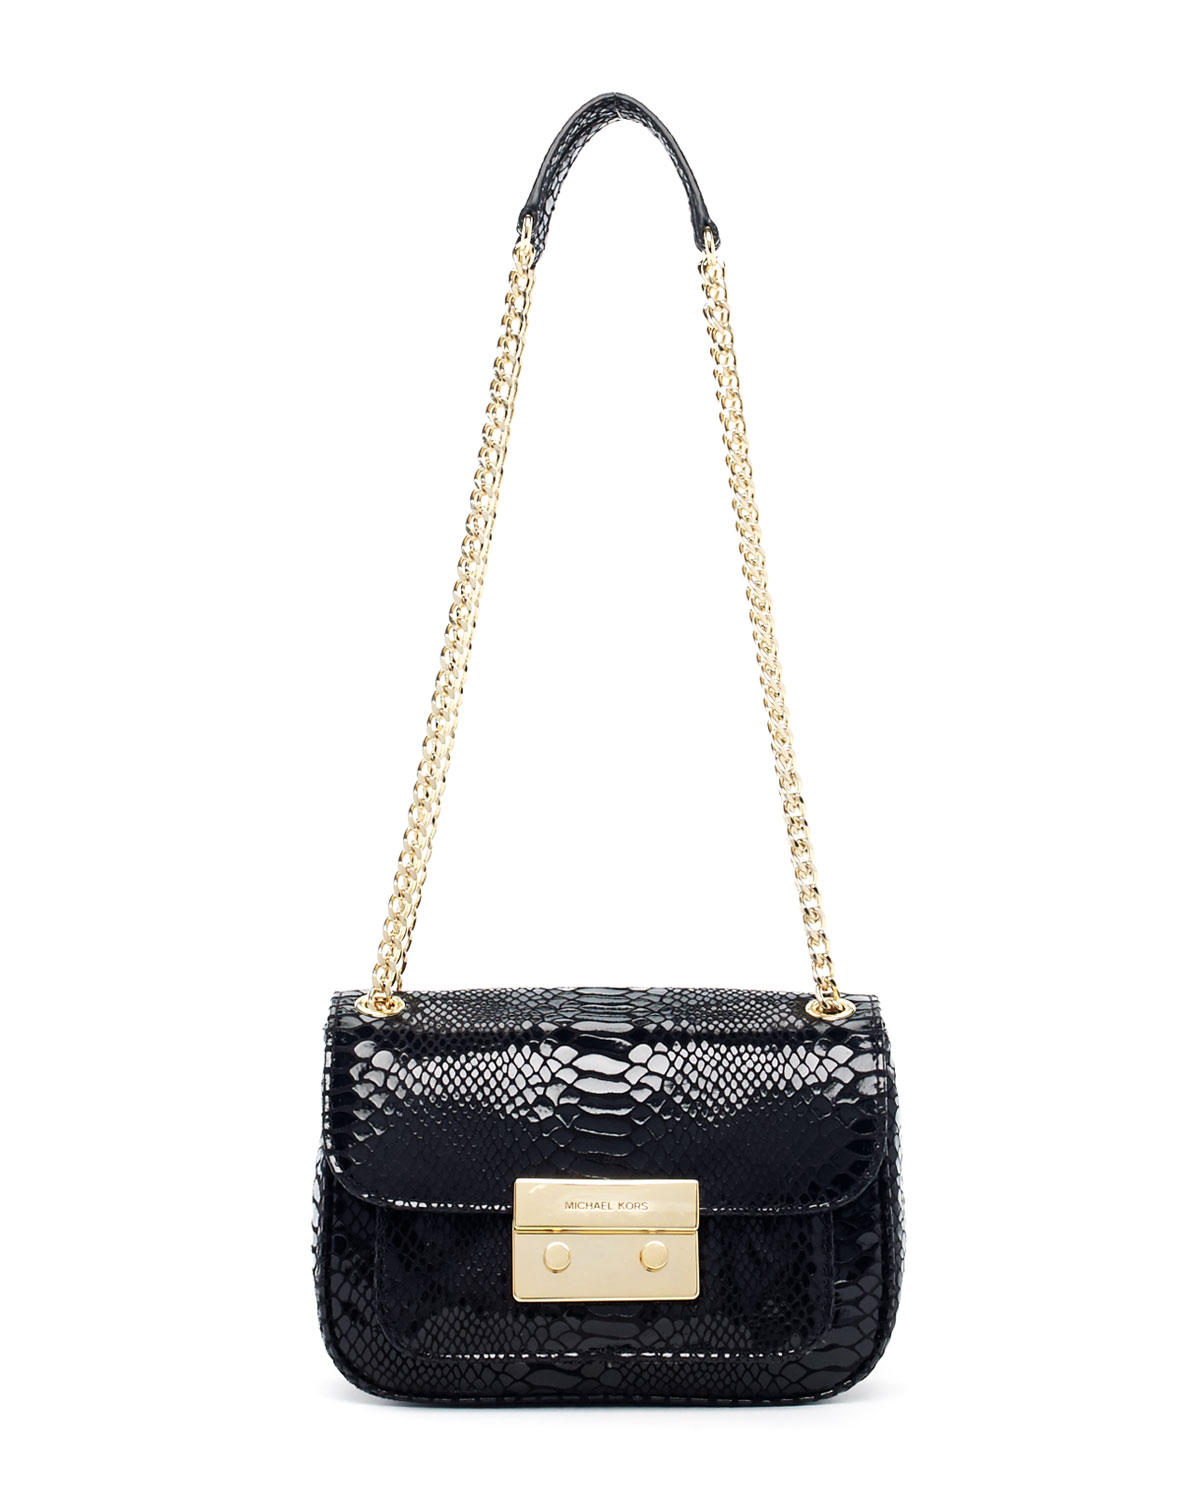 d6a0c14be51b ... discount code for lyst michael kors sloan small pythonembossed shoulder  bag in black 94e36 c130b